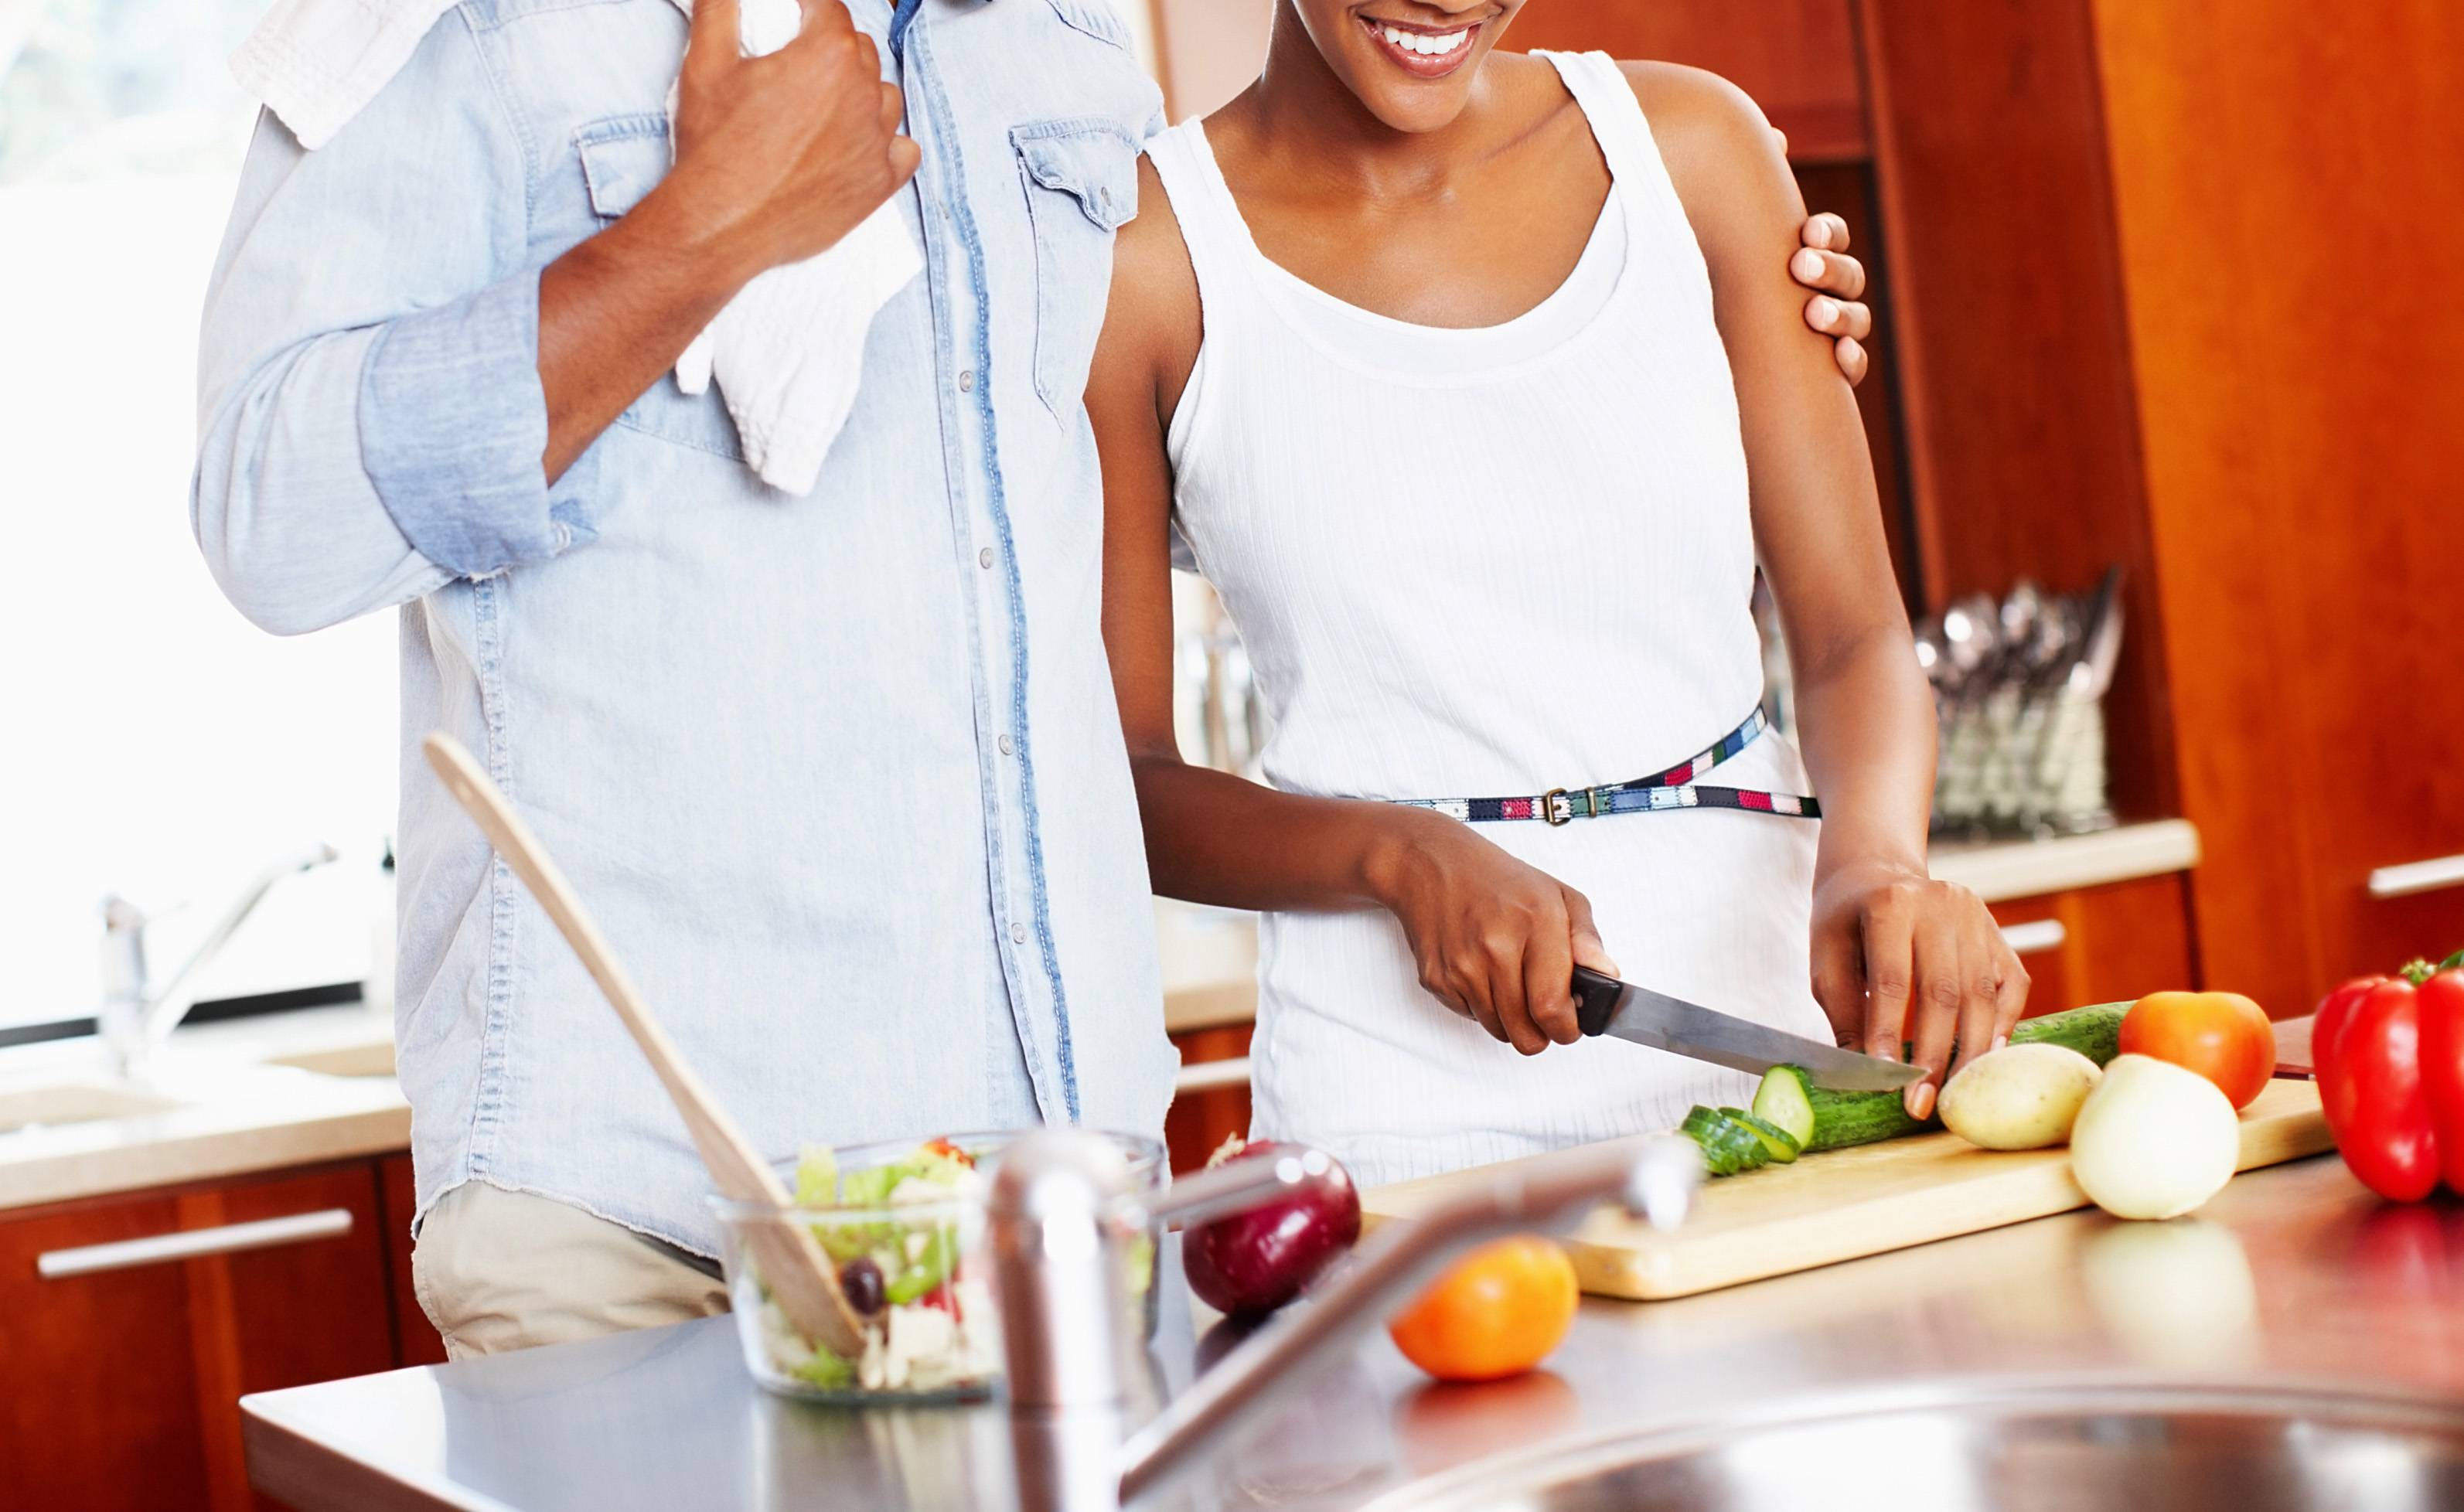 Cook a Special Meal - A bit cliche but if you're not used to cooking a meal it can really impress your mate. Of course, you have to jazz it up with fine wine, slow jams and candles.  (Photo: Getty Images/STOCK)